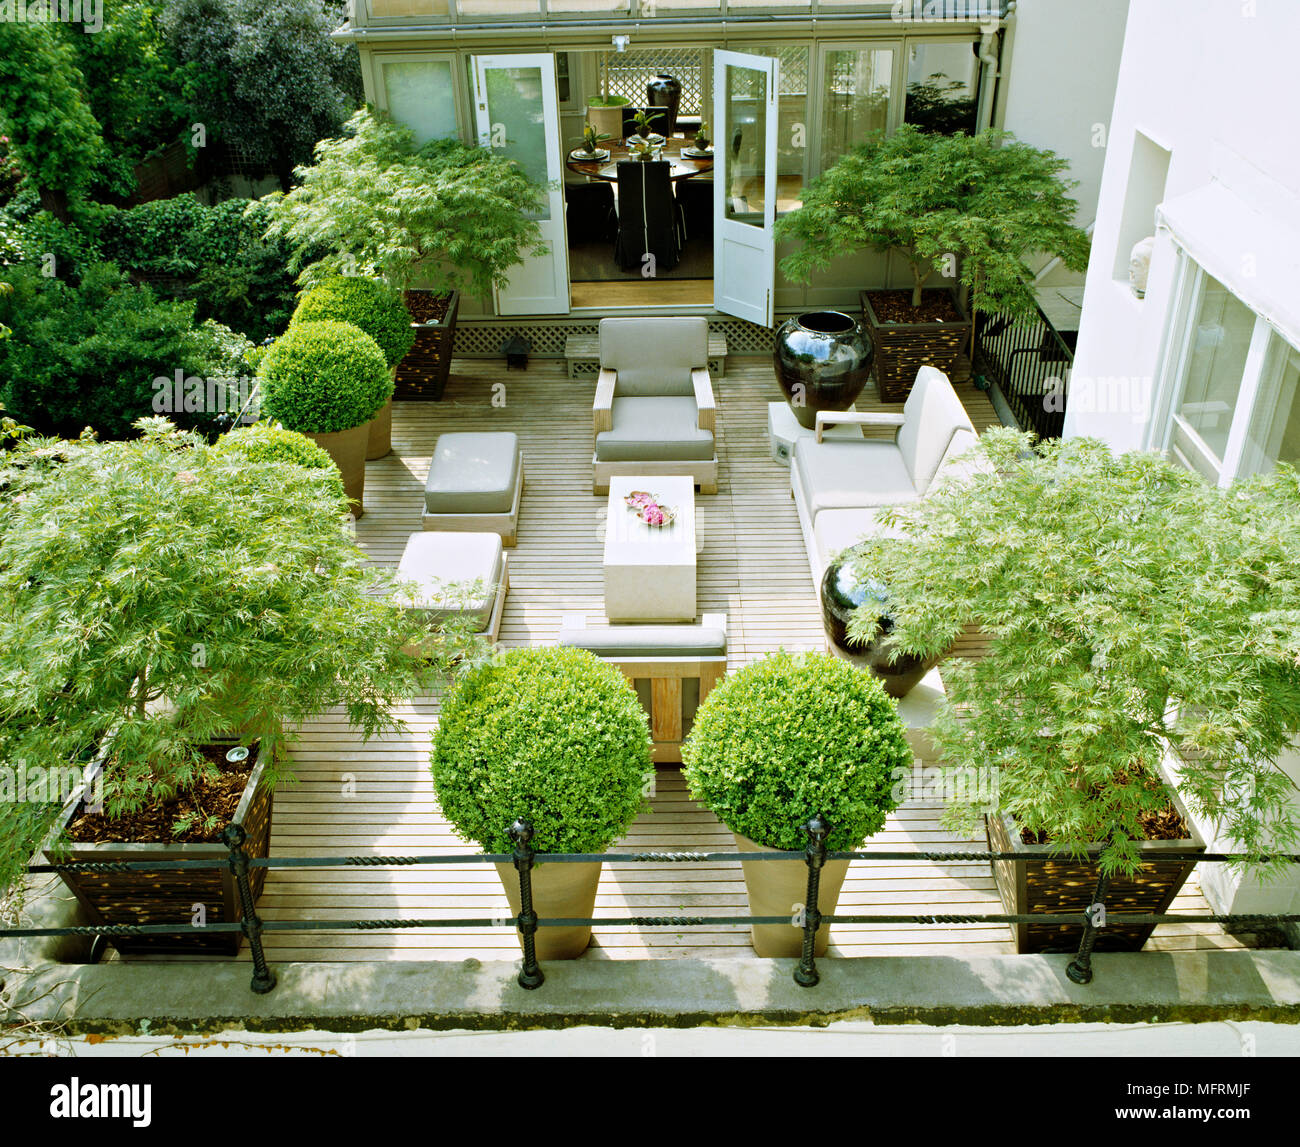 A Modern Town Garden Roof Terrace With Decked Patio Area Table And